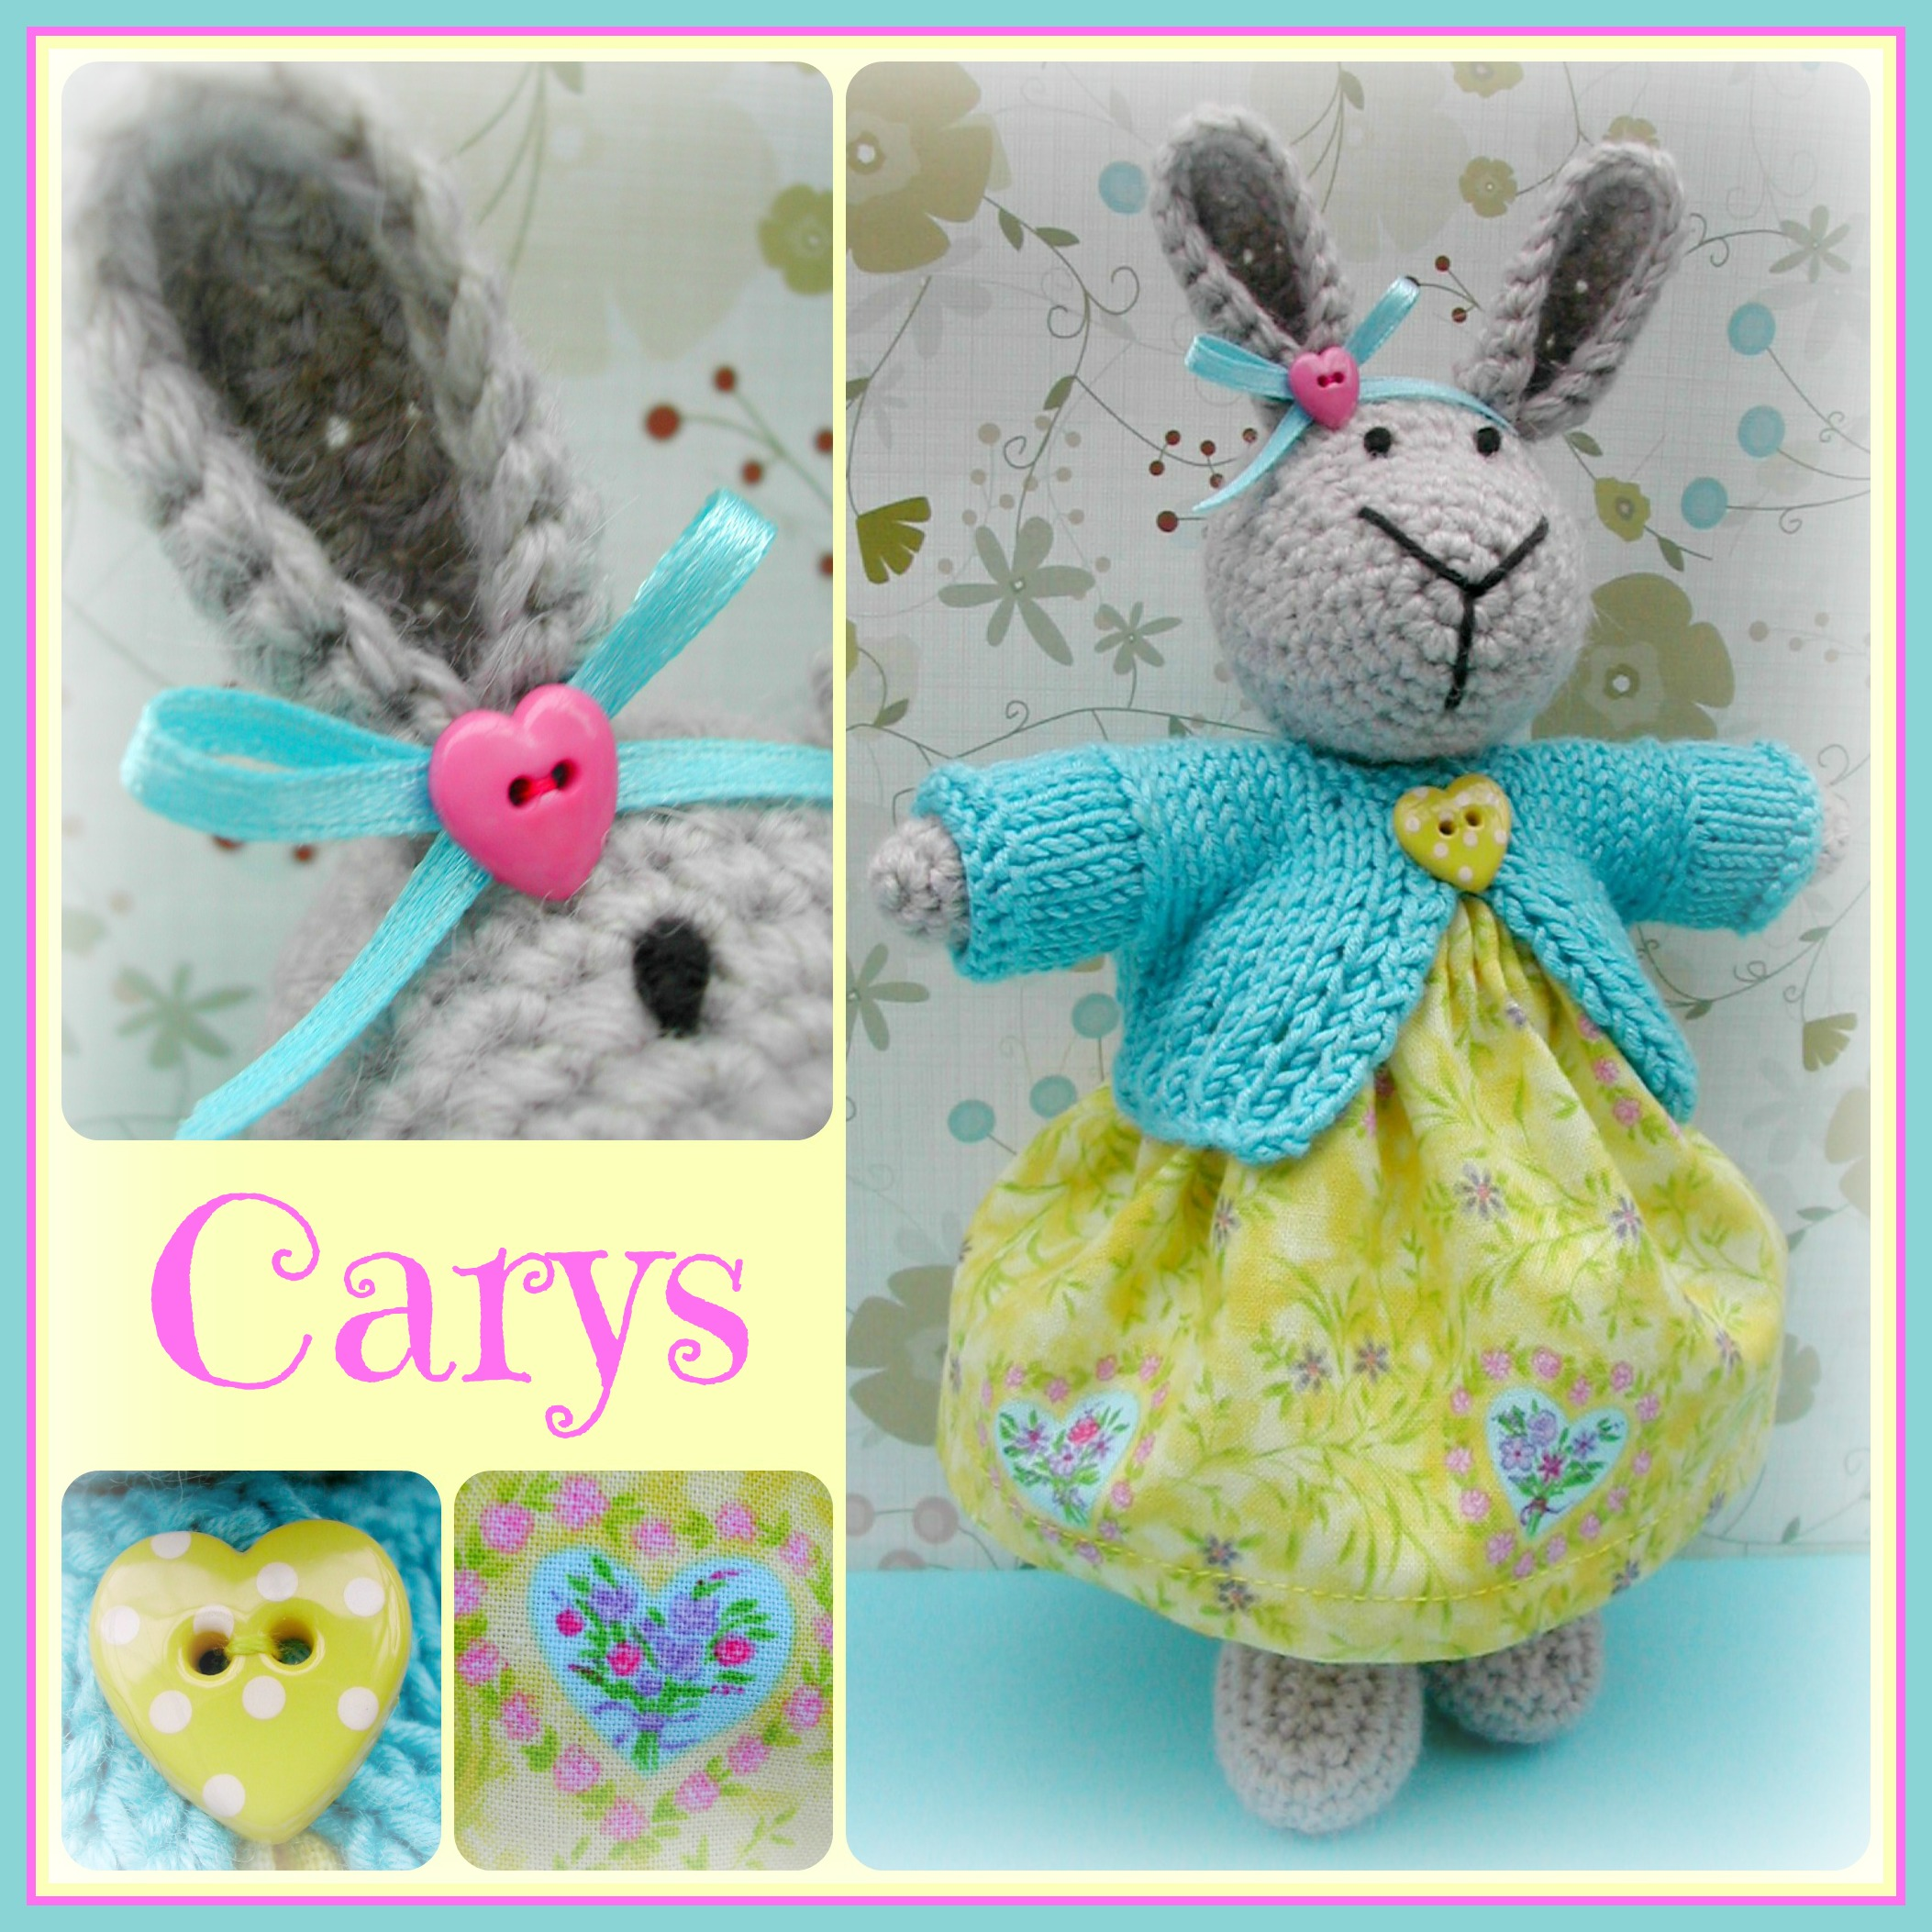 Carys Collage